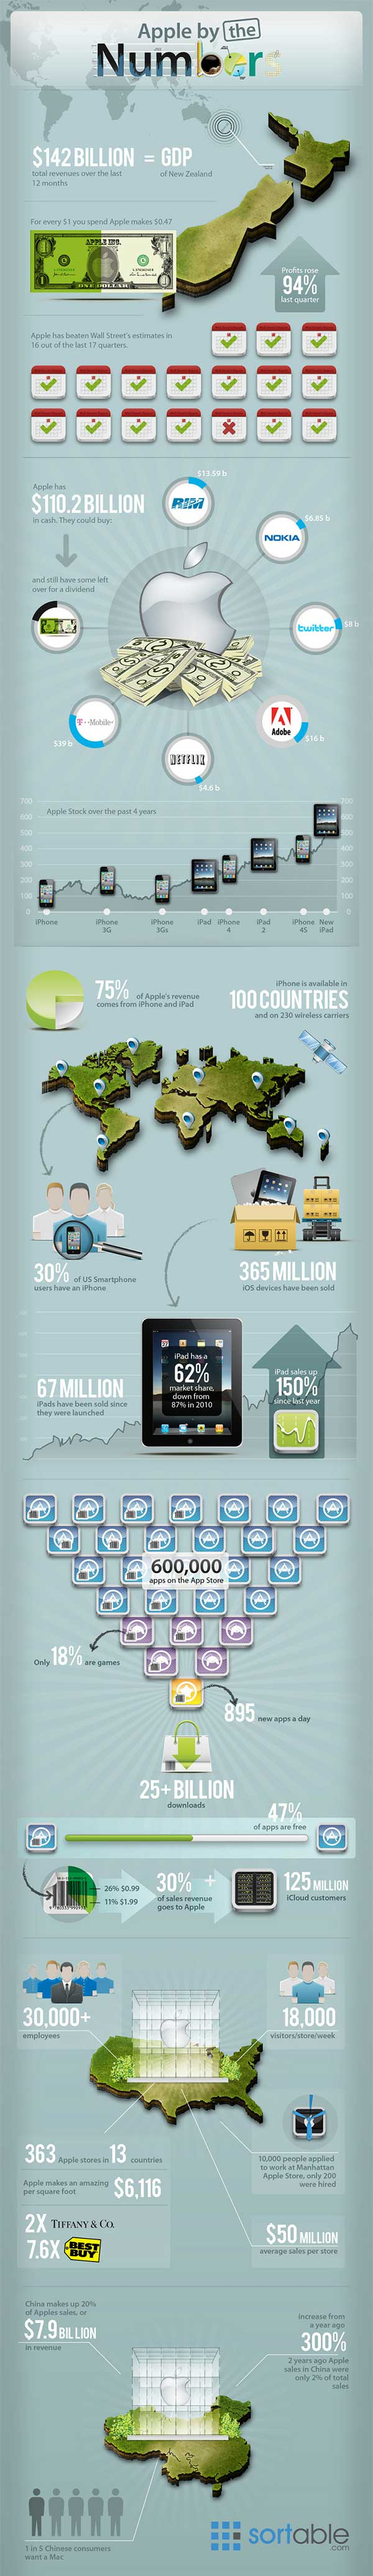 infographie apple